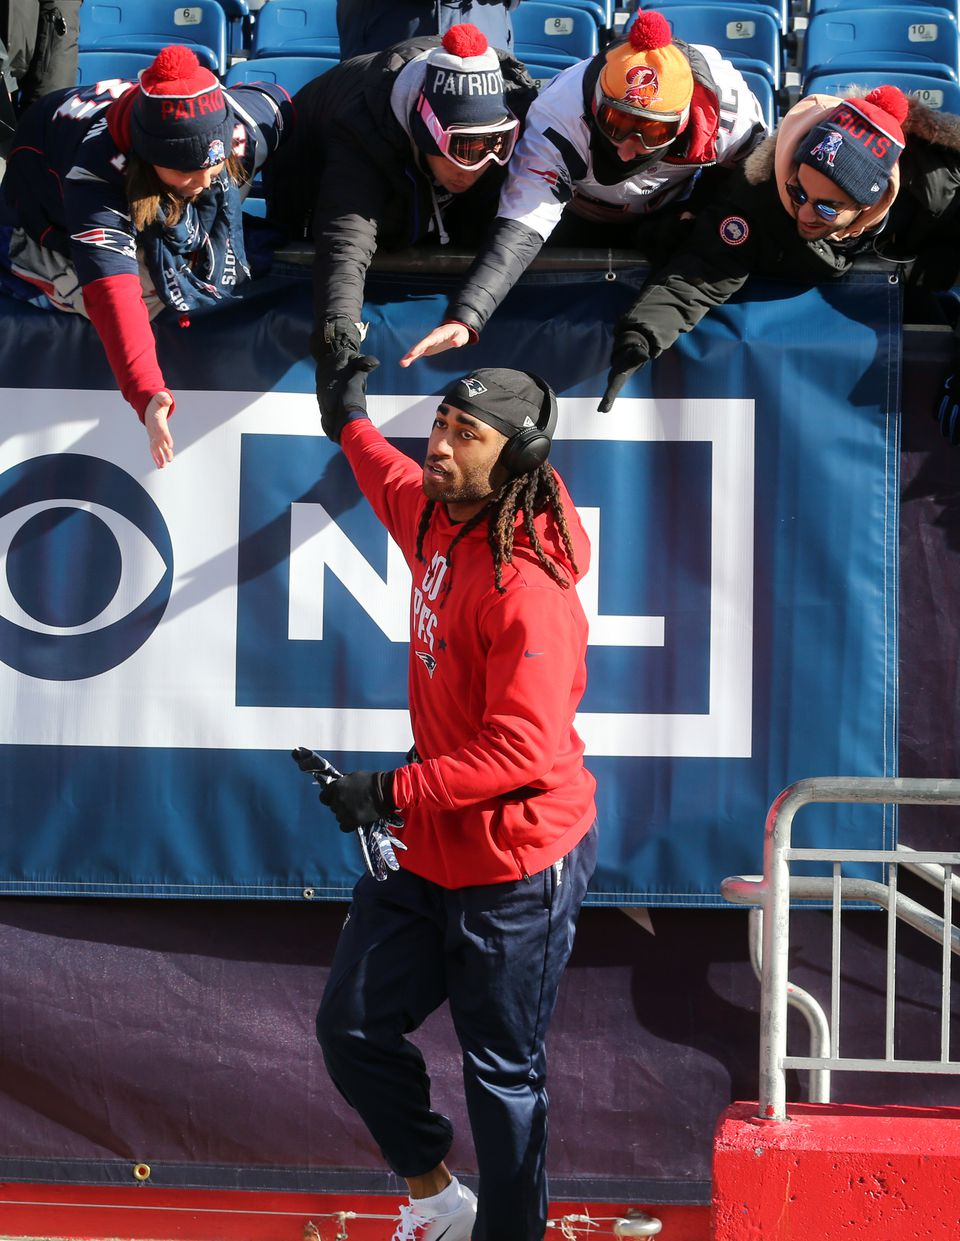 Patriots cornerback Stephon Gilmore high fives fans before the game.